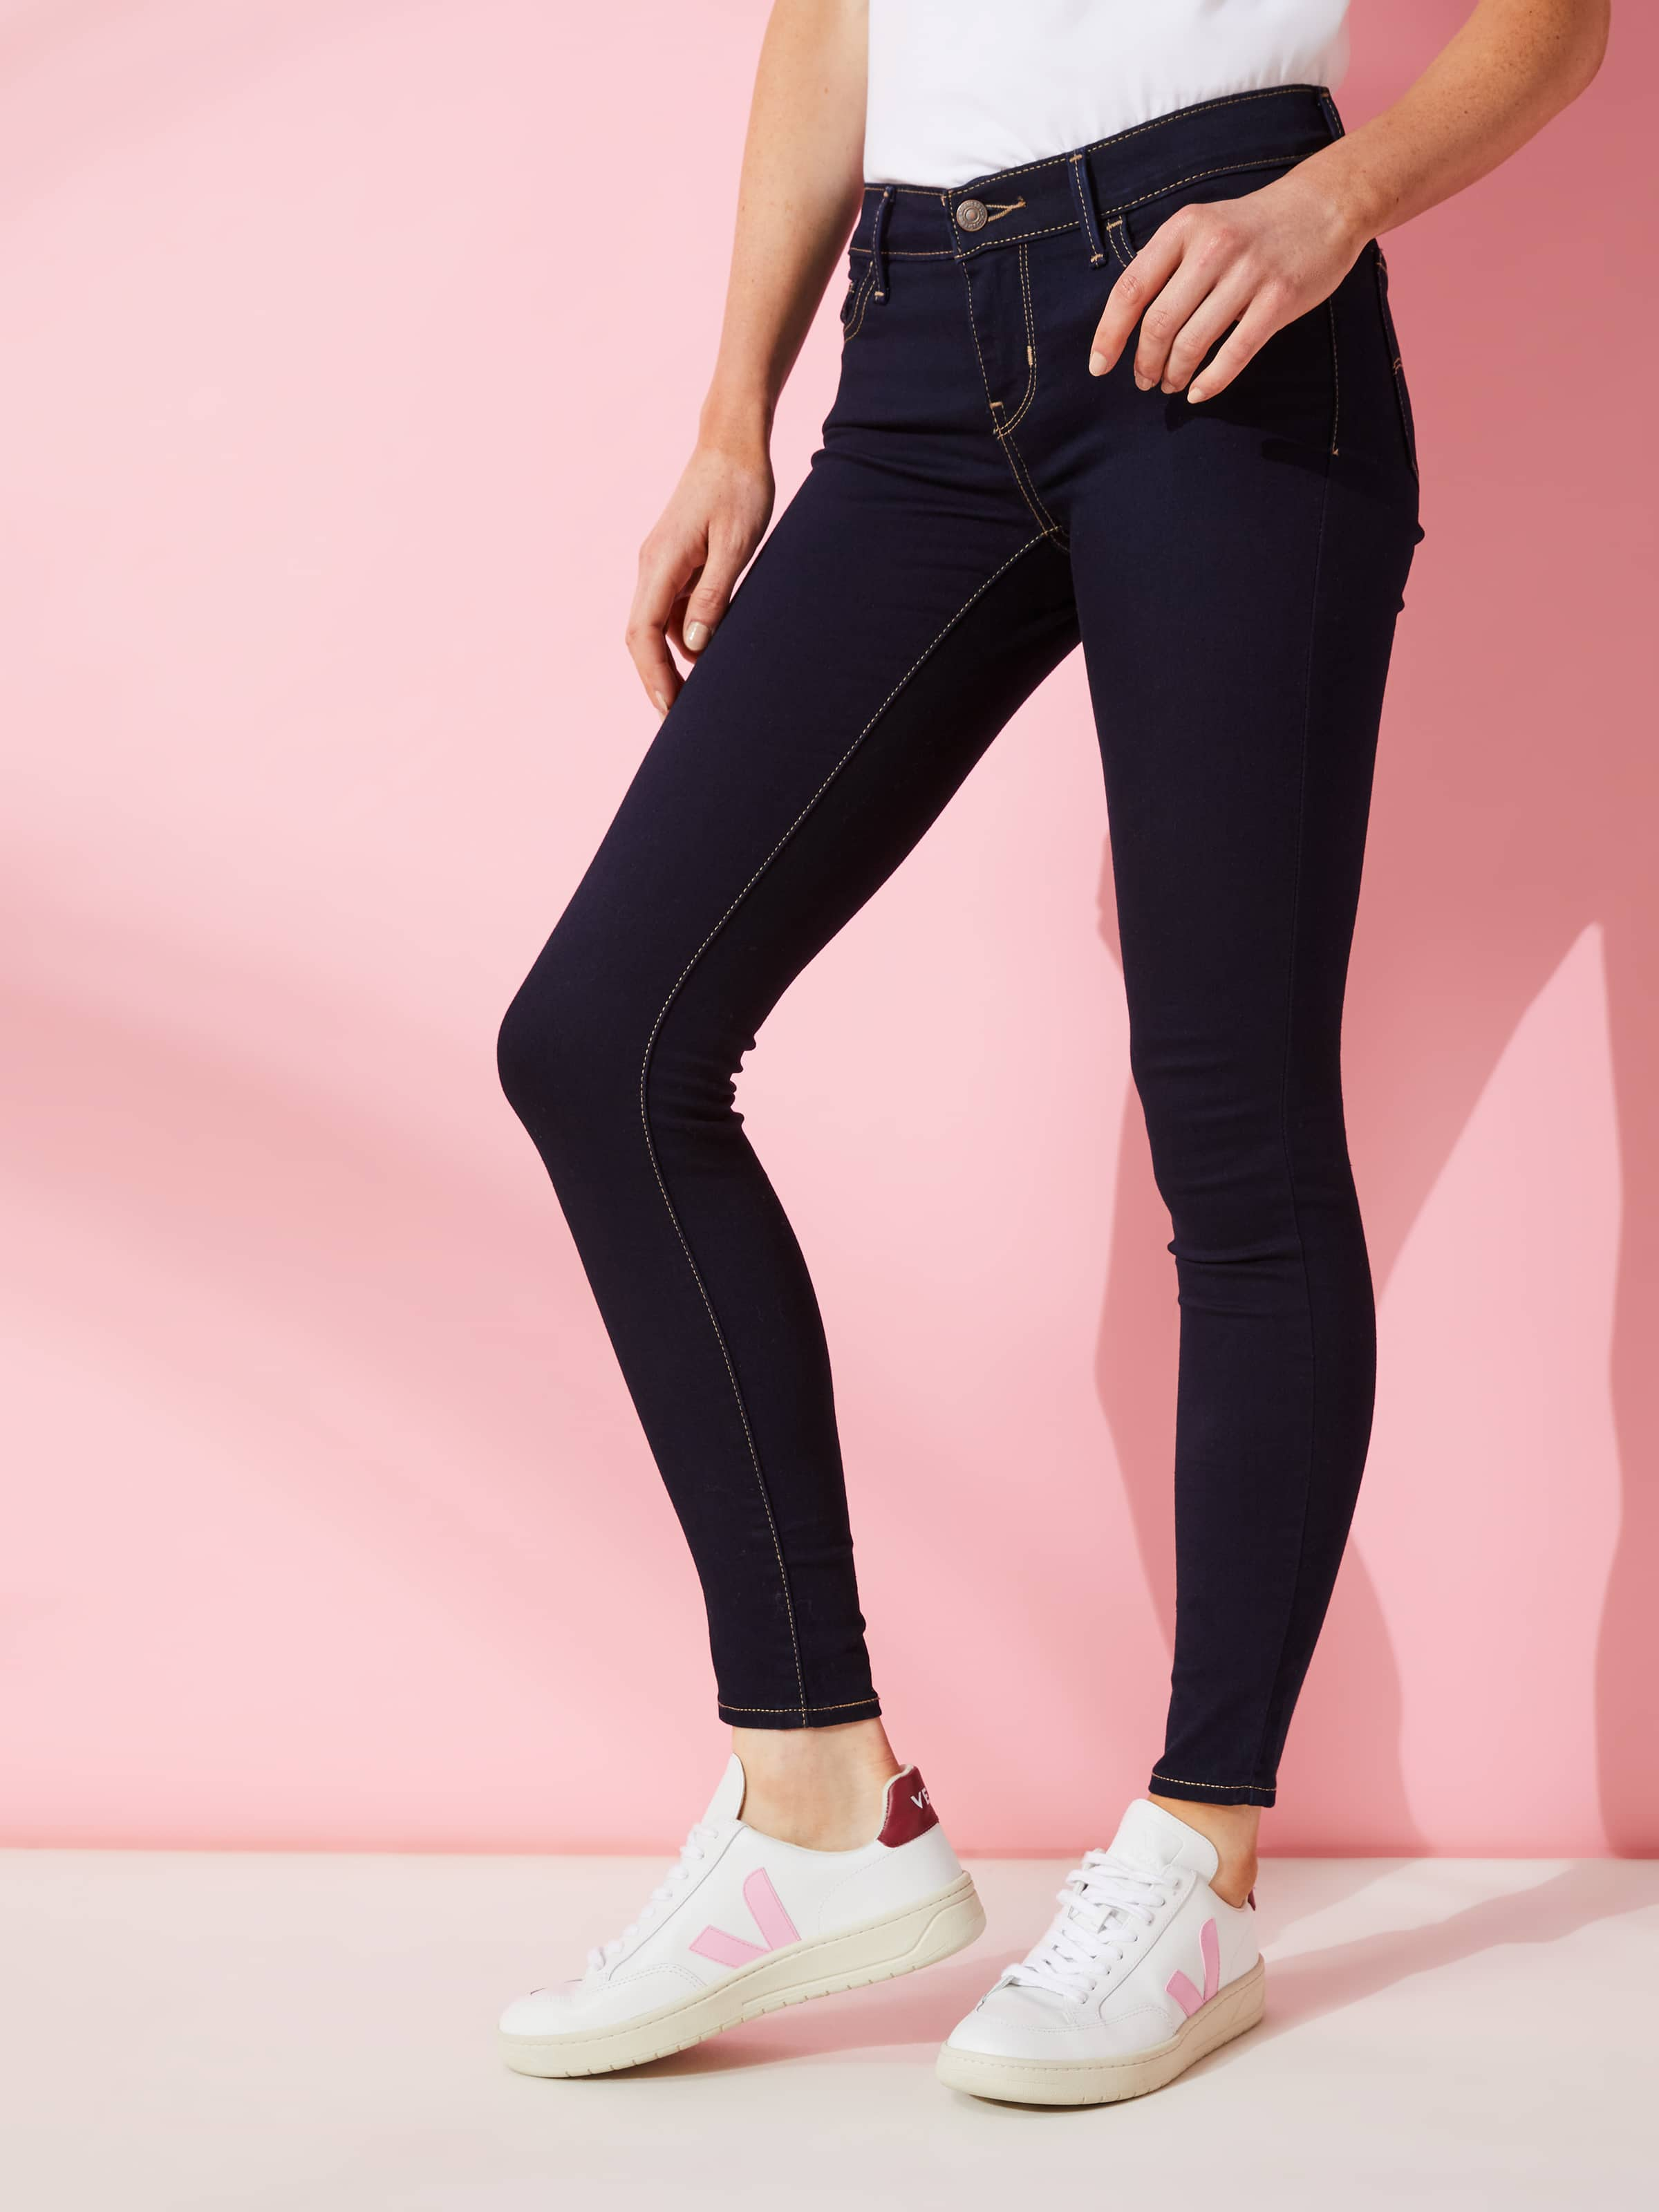 aab8f0a492 Image for Levi s 710 Super Skinny Jean In Dusk Rinse from Just Jeans ...